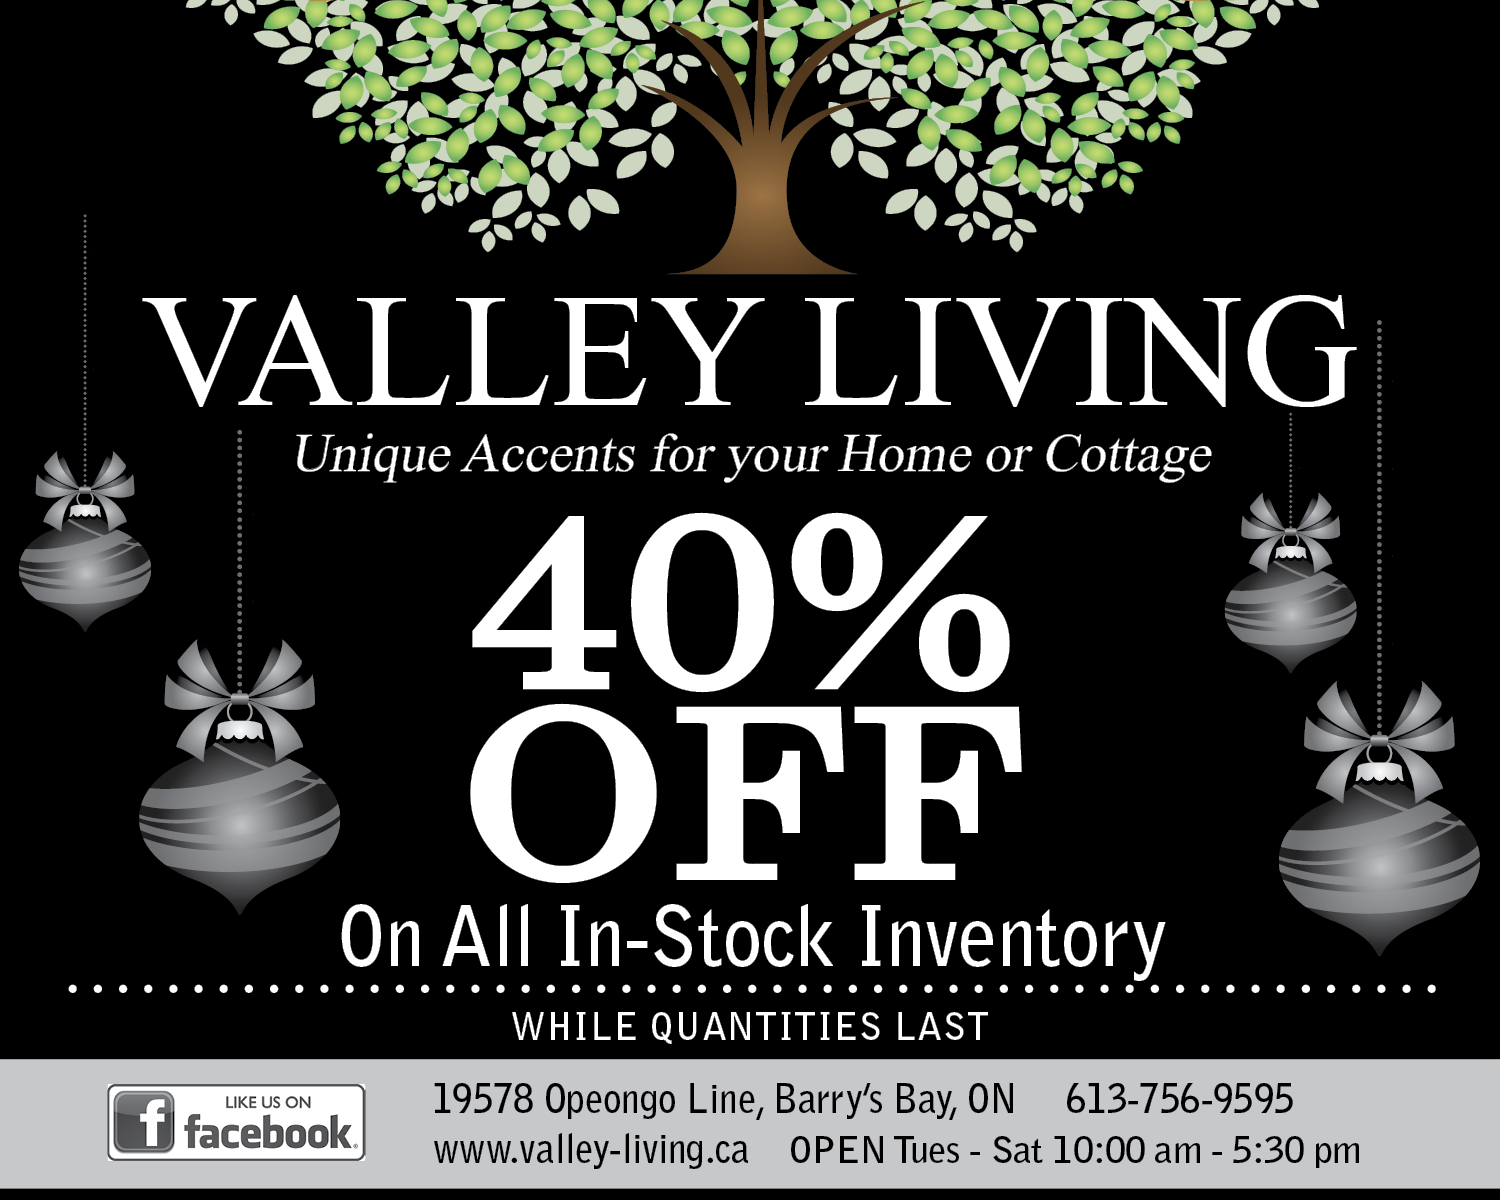 11-28-BLACK-FRIDAY-Valley-Living-3x8.png